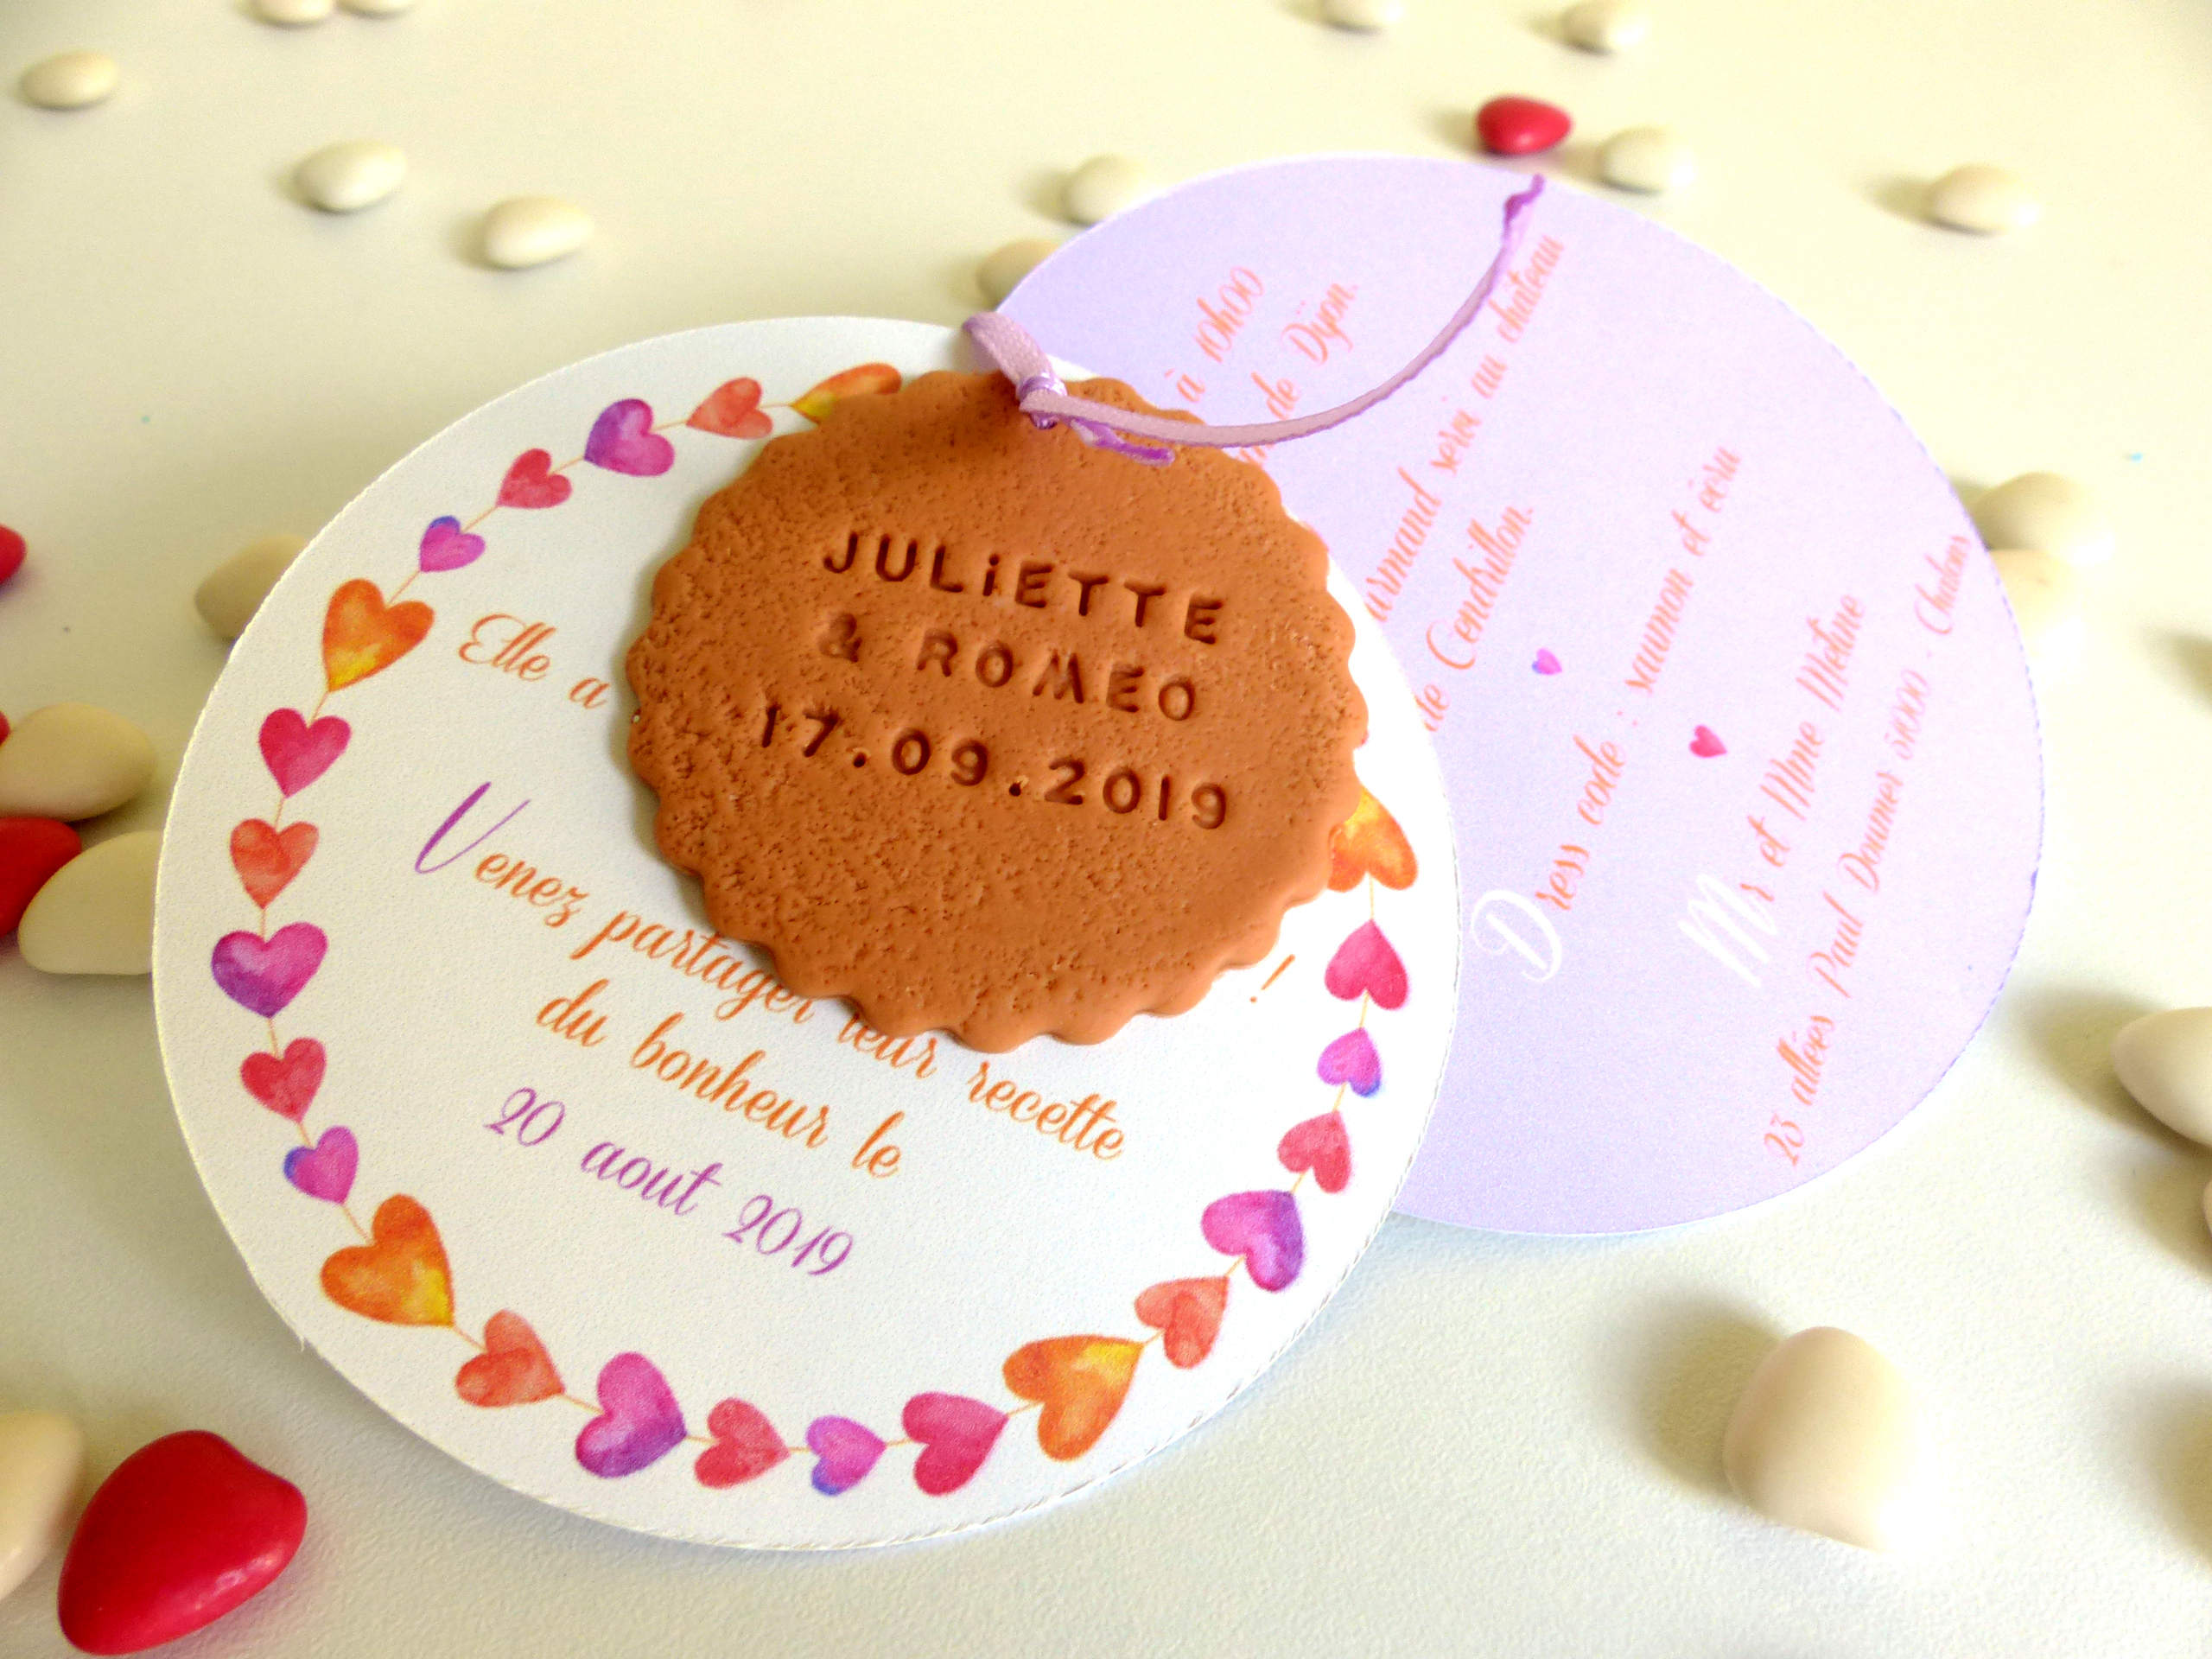 faire-part coeur, rond, biscuit, violet, saumon